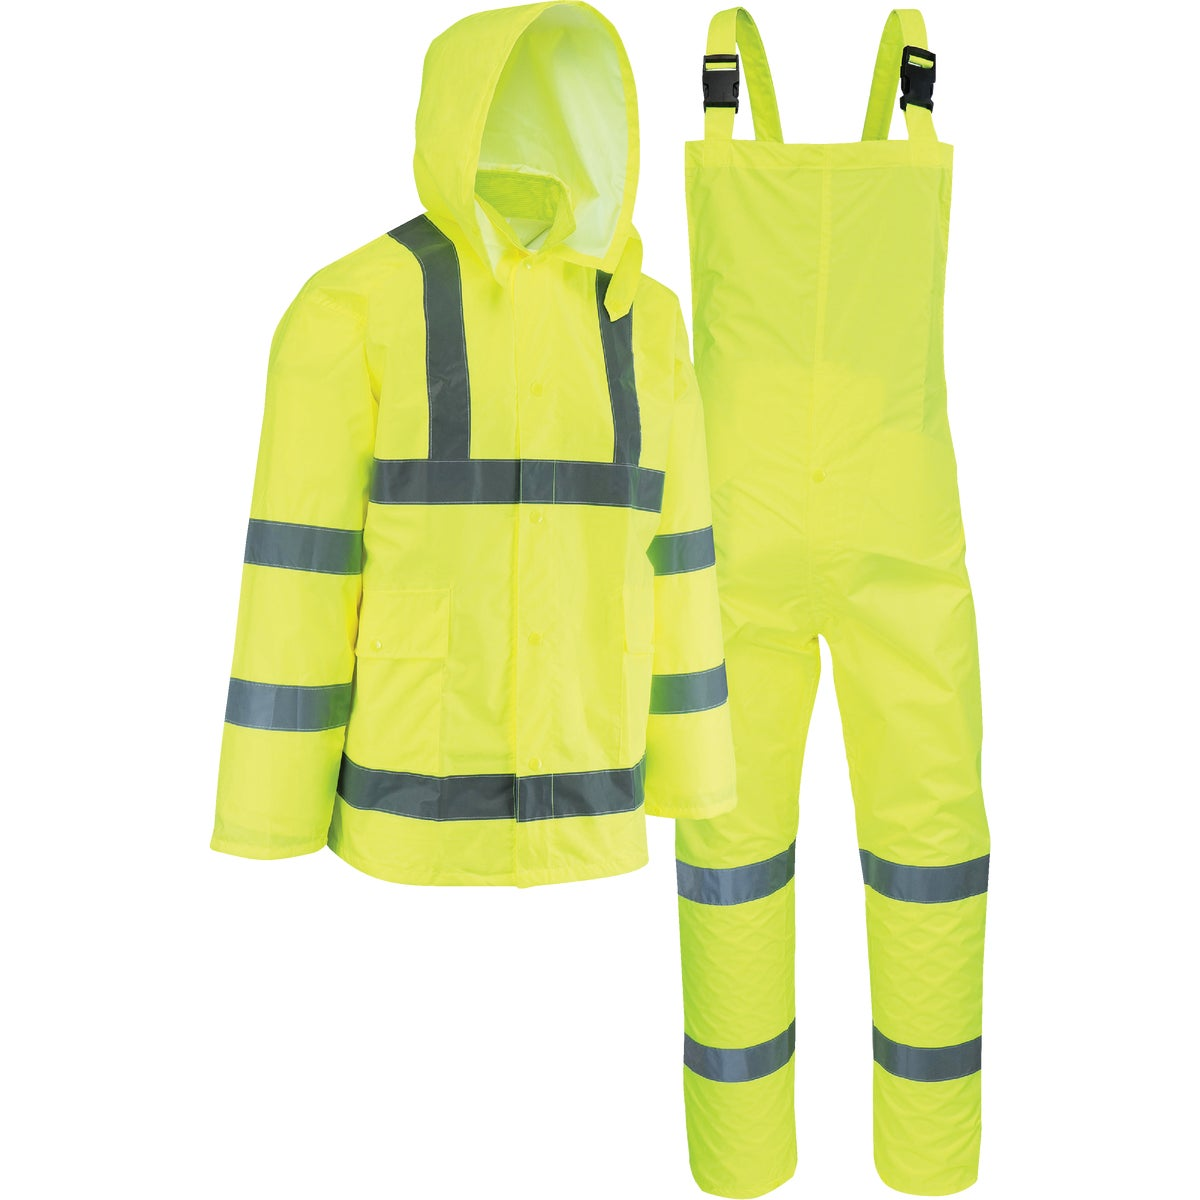 West Chester 3-Piece Hi Visibility Rain Suit, 44033/XL